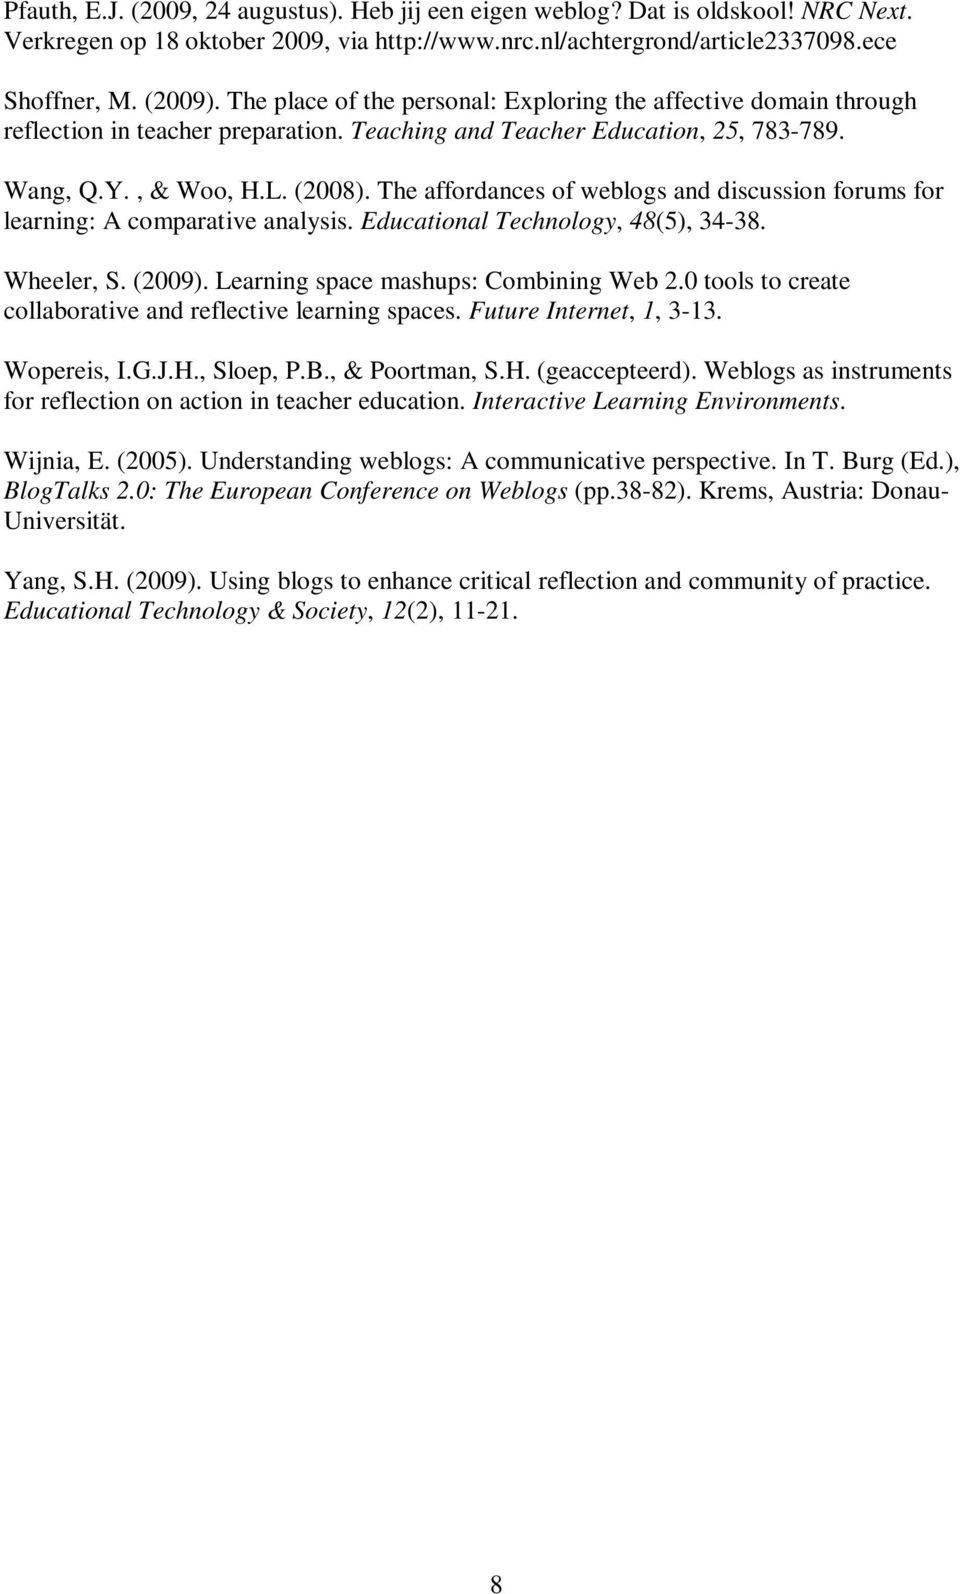 The affordances of weblogs and discussion forums for learning: A comparative analysis. Educational Technology, 48(5), 34-38. Wheeler, S. (2009). Learning space mashups: Combining Web 2.